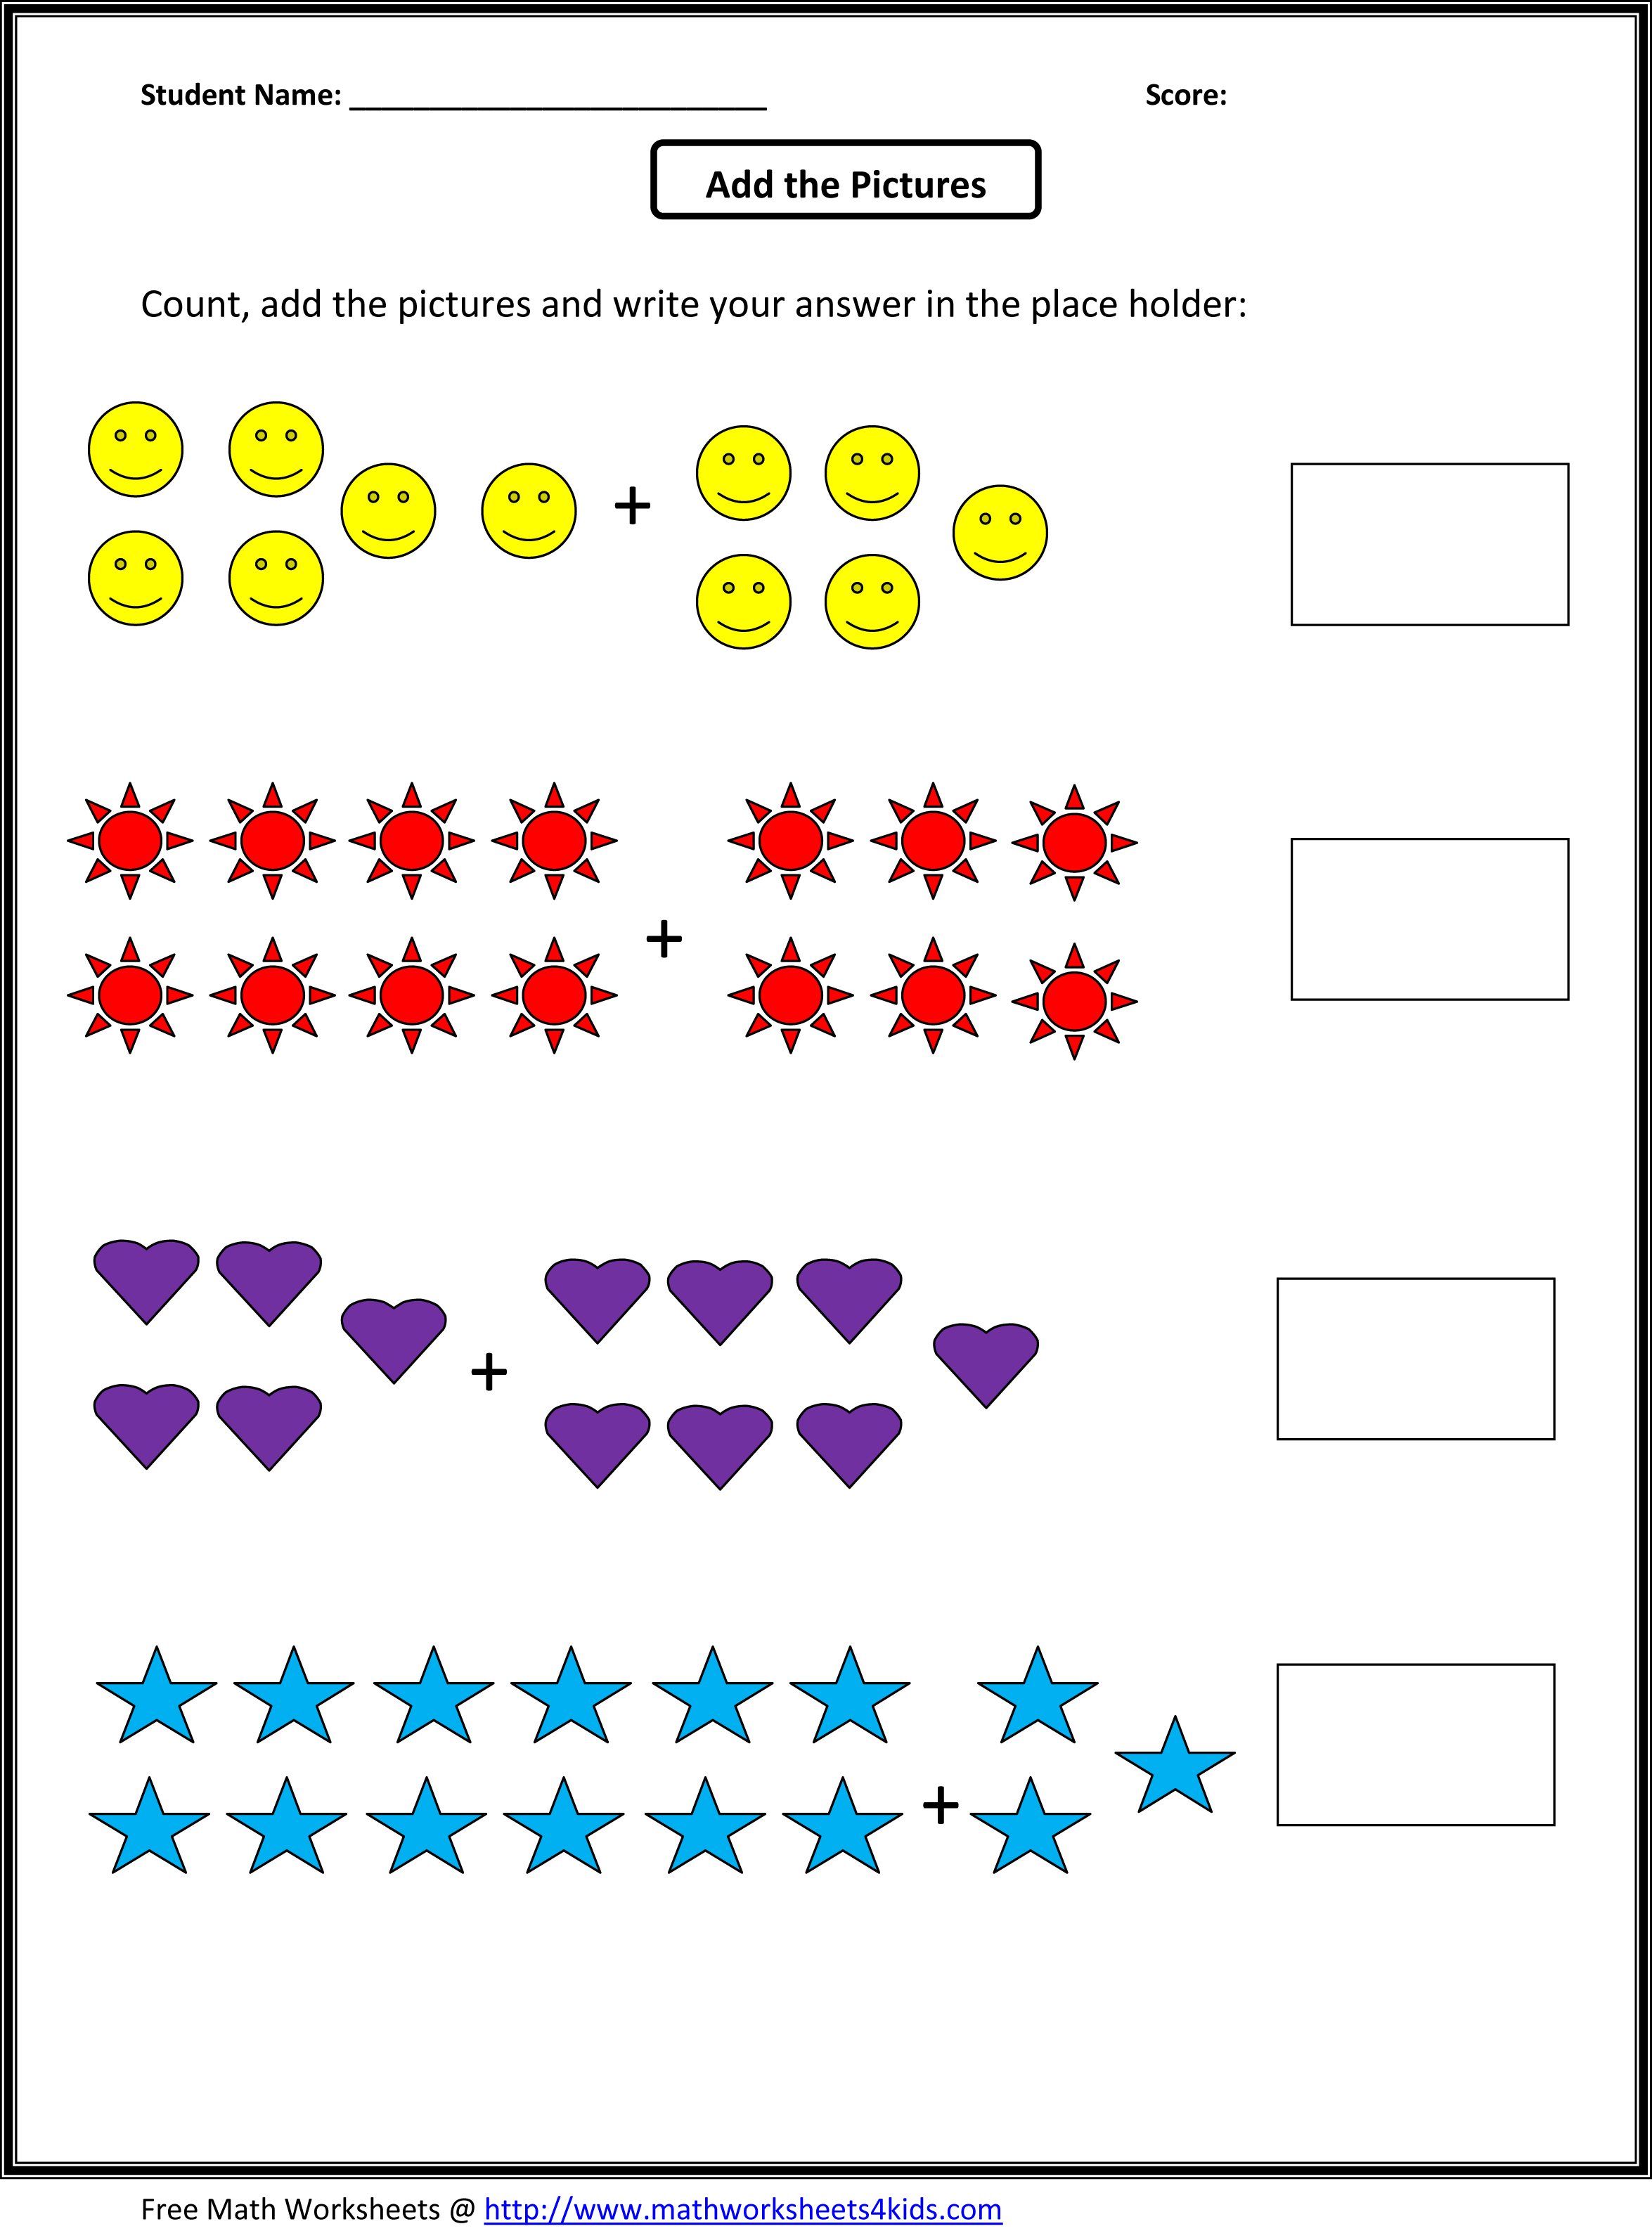 Proatmealus  Scenic Grade  Maths Worksheet  Reocurent With Fascinating Math Worksheets For St Grade Free  Reocurent With Delightful Math Coordinates Worksheet Also Worksheets Converting Fractions To Decimals In Addition Part Of Plants Worksheet And Worksheet For Ratio And Proportion As Well As Opposite Words Worksheets For Grade  Additionally Practice Writing Letters And Numbers Worksheets From Reocurentcom With Proatmealus  Fascinating Grade  Maths Worksheet  Reocurent With Delightful Math Worksheets For St Grade Free  Reocurent And Scenic Math Coordinates Worksheet Also Worksheets Converting Fractions To Decimals In Addition Part Of Plants Worksheet From Reocurentcom